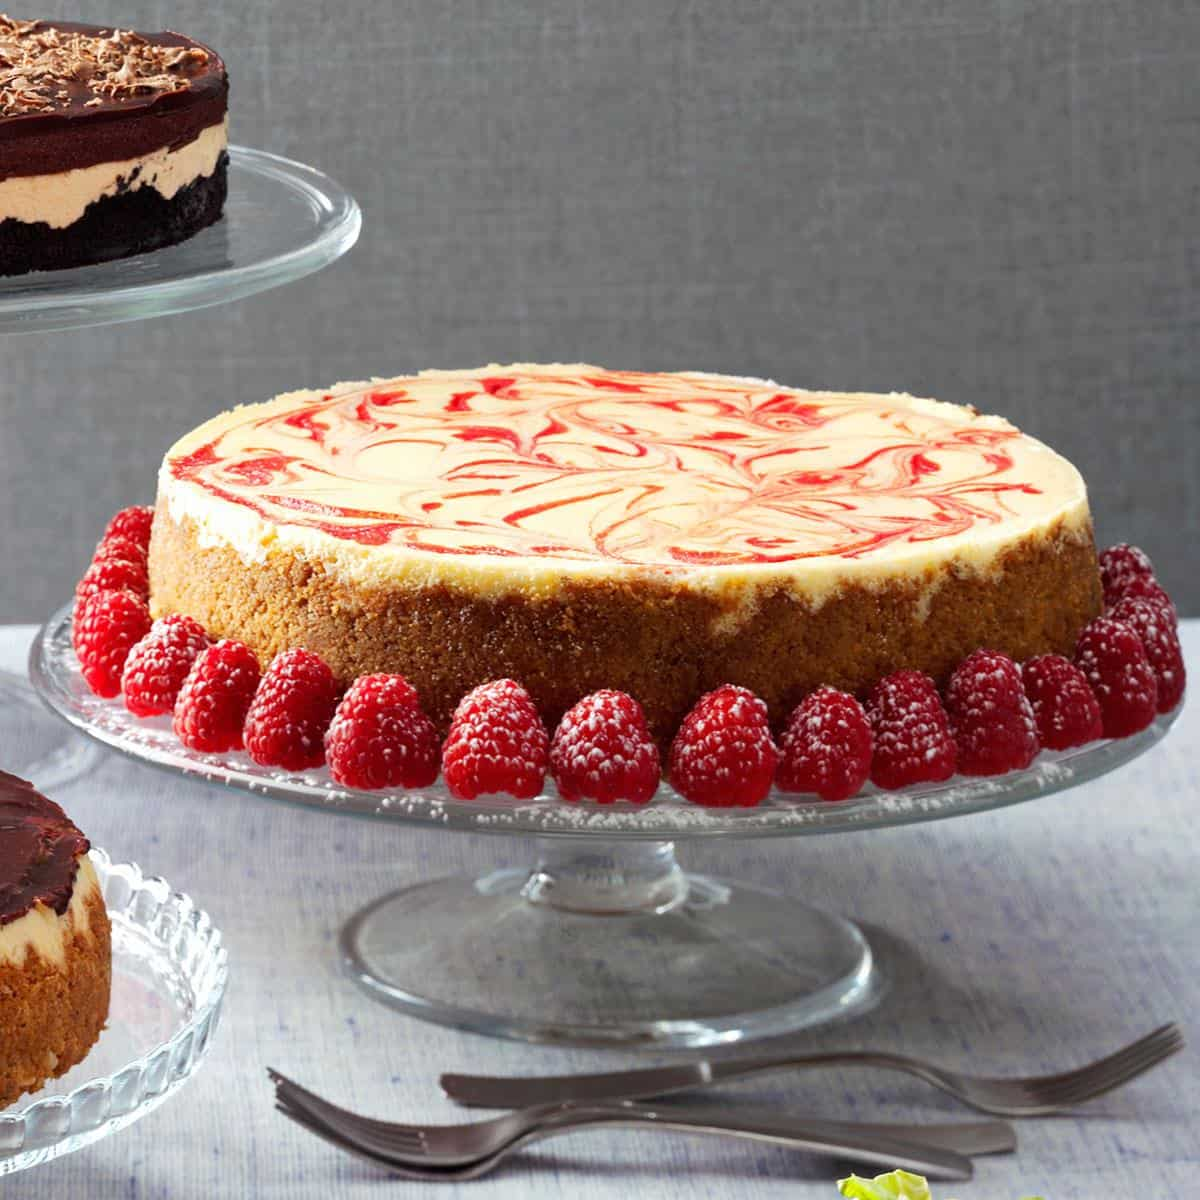 Swirled raspberry and white chocolate cheesecake